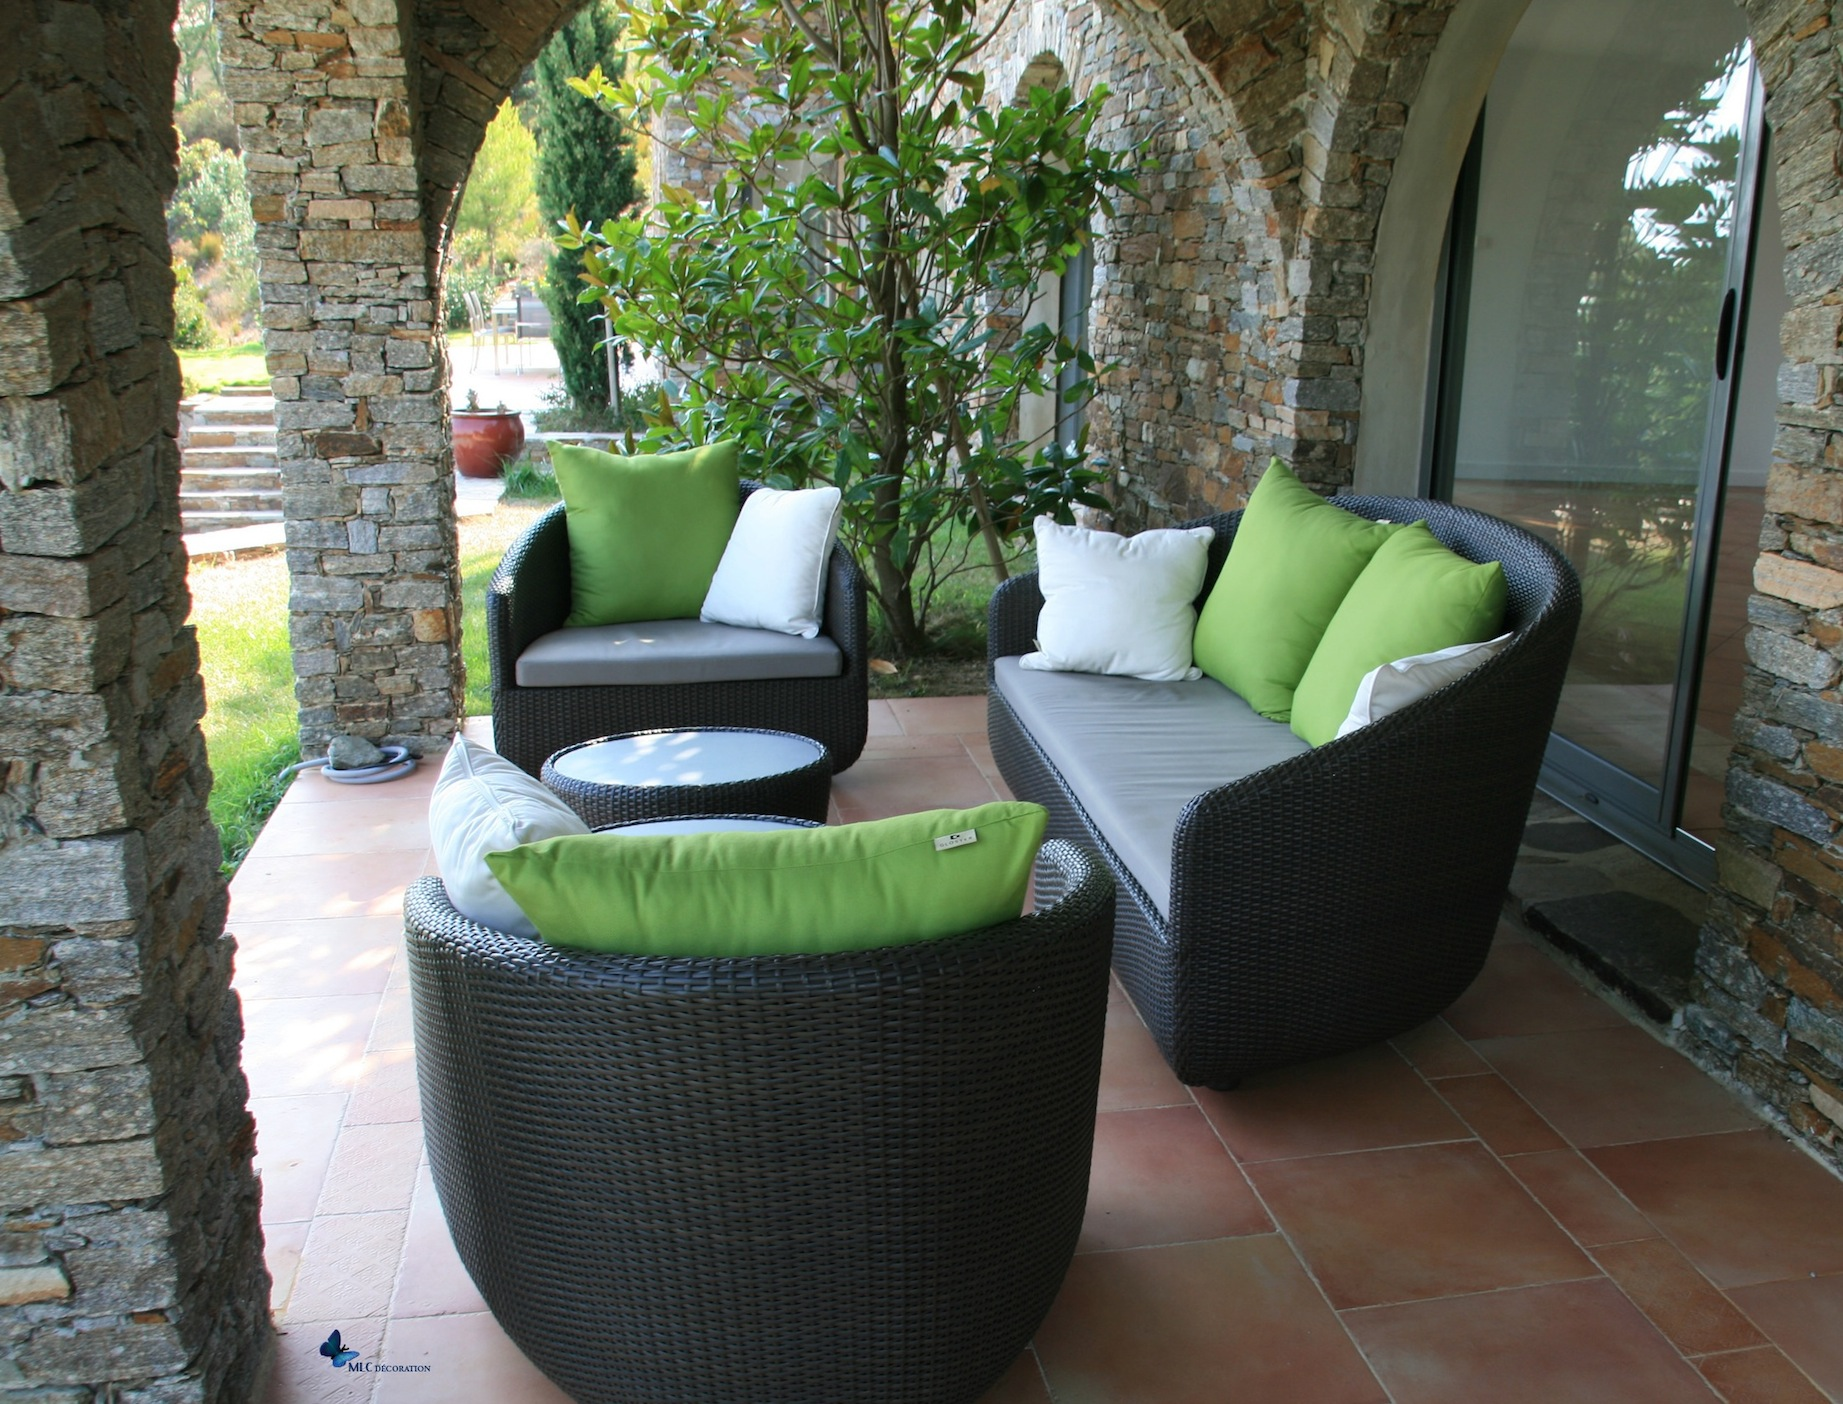 Canap ext rieur design archives le blog d co de mlc for Decoration jardin exterieur design